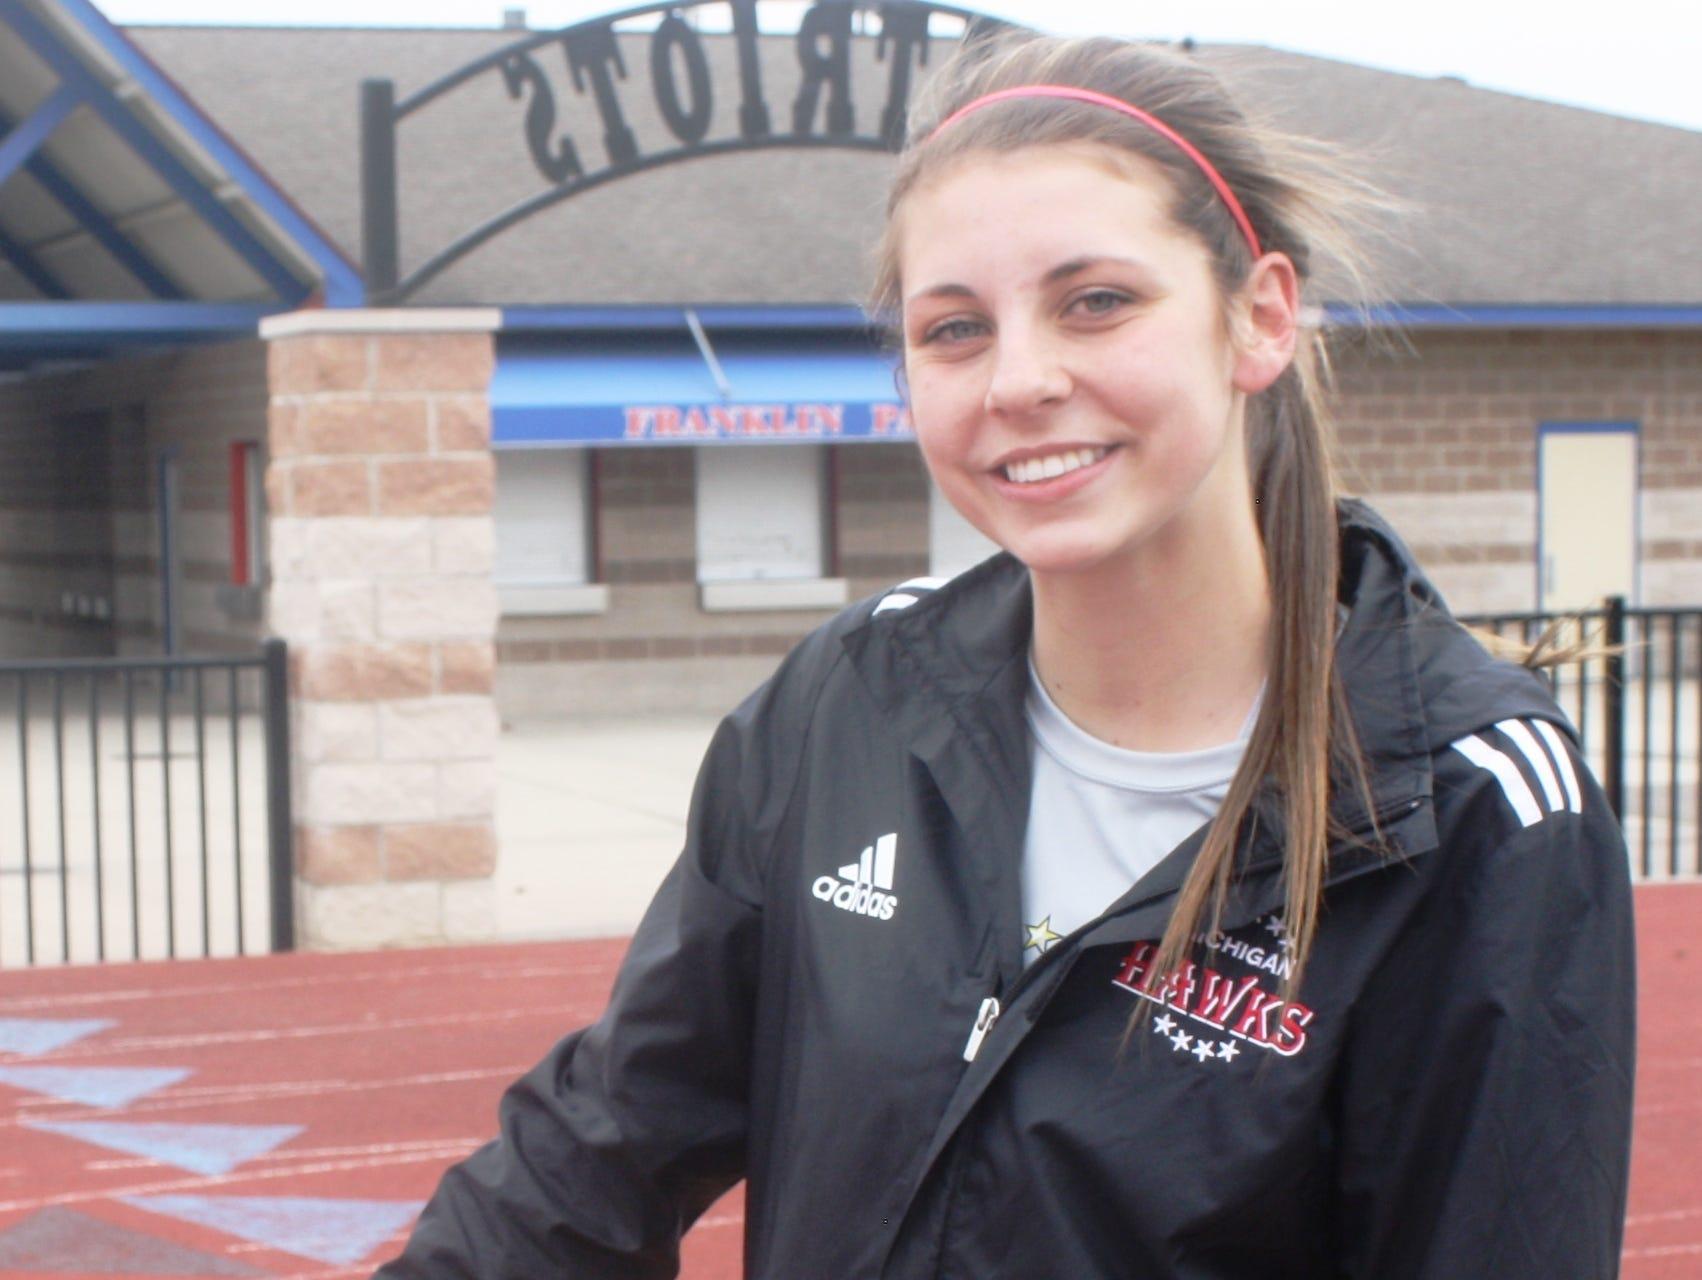 Franklin senior soccer player Bella Yardley has reason to smile after overcoming a serious injury that required surgery and sidelined her for close to six months.